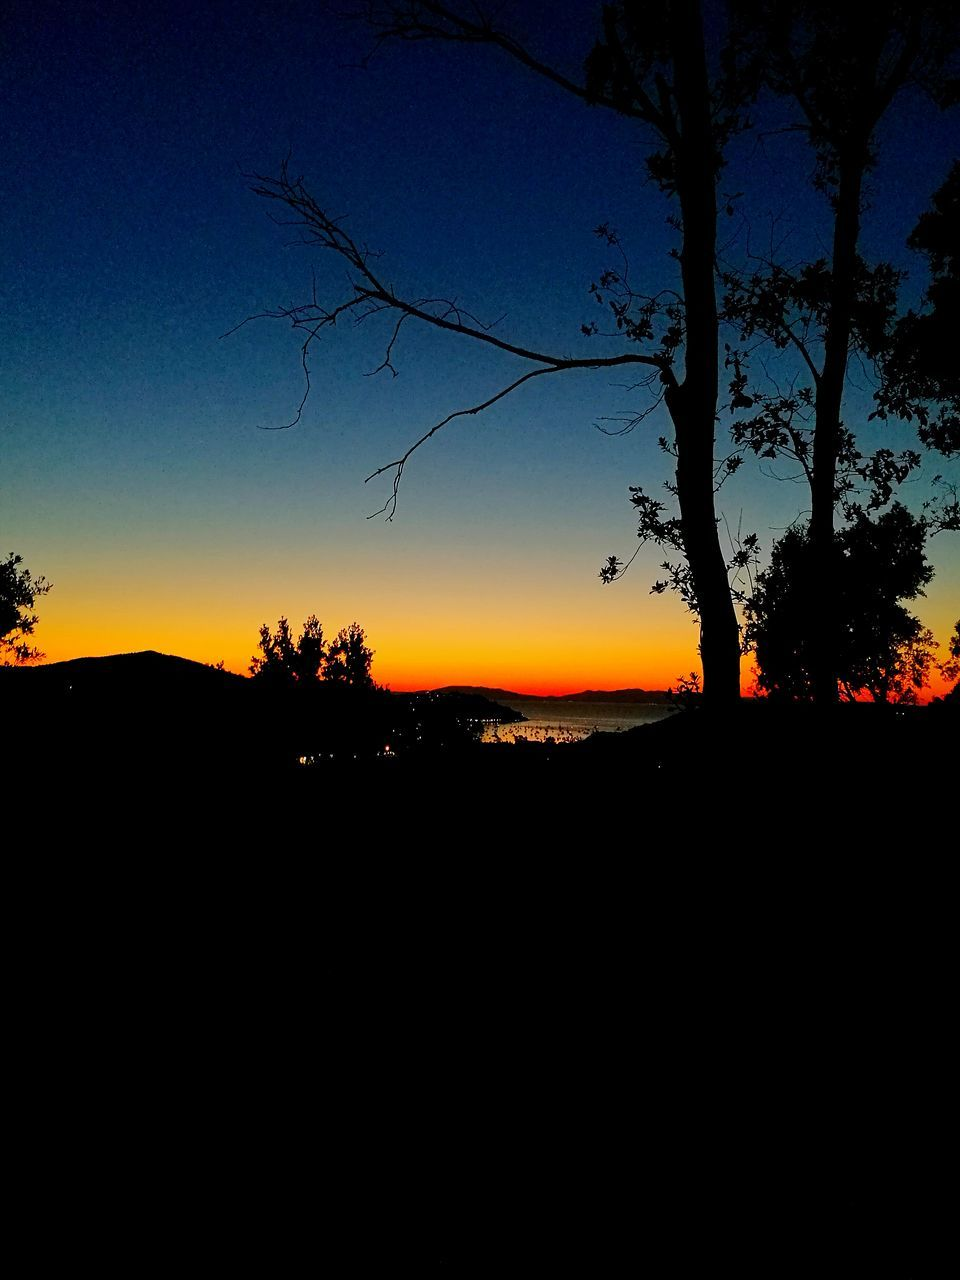 silhouette, tree, sunset, beauty in nature, dark, nature, landscape, scenics, tranquil scene, tranquility, sky, no people, outdoors, clear sky, branch, day